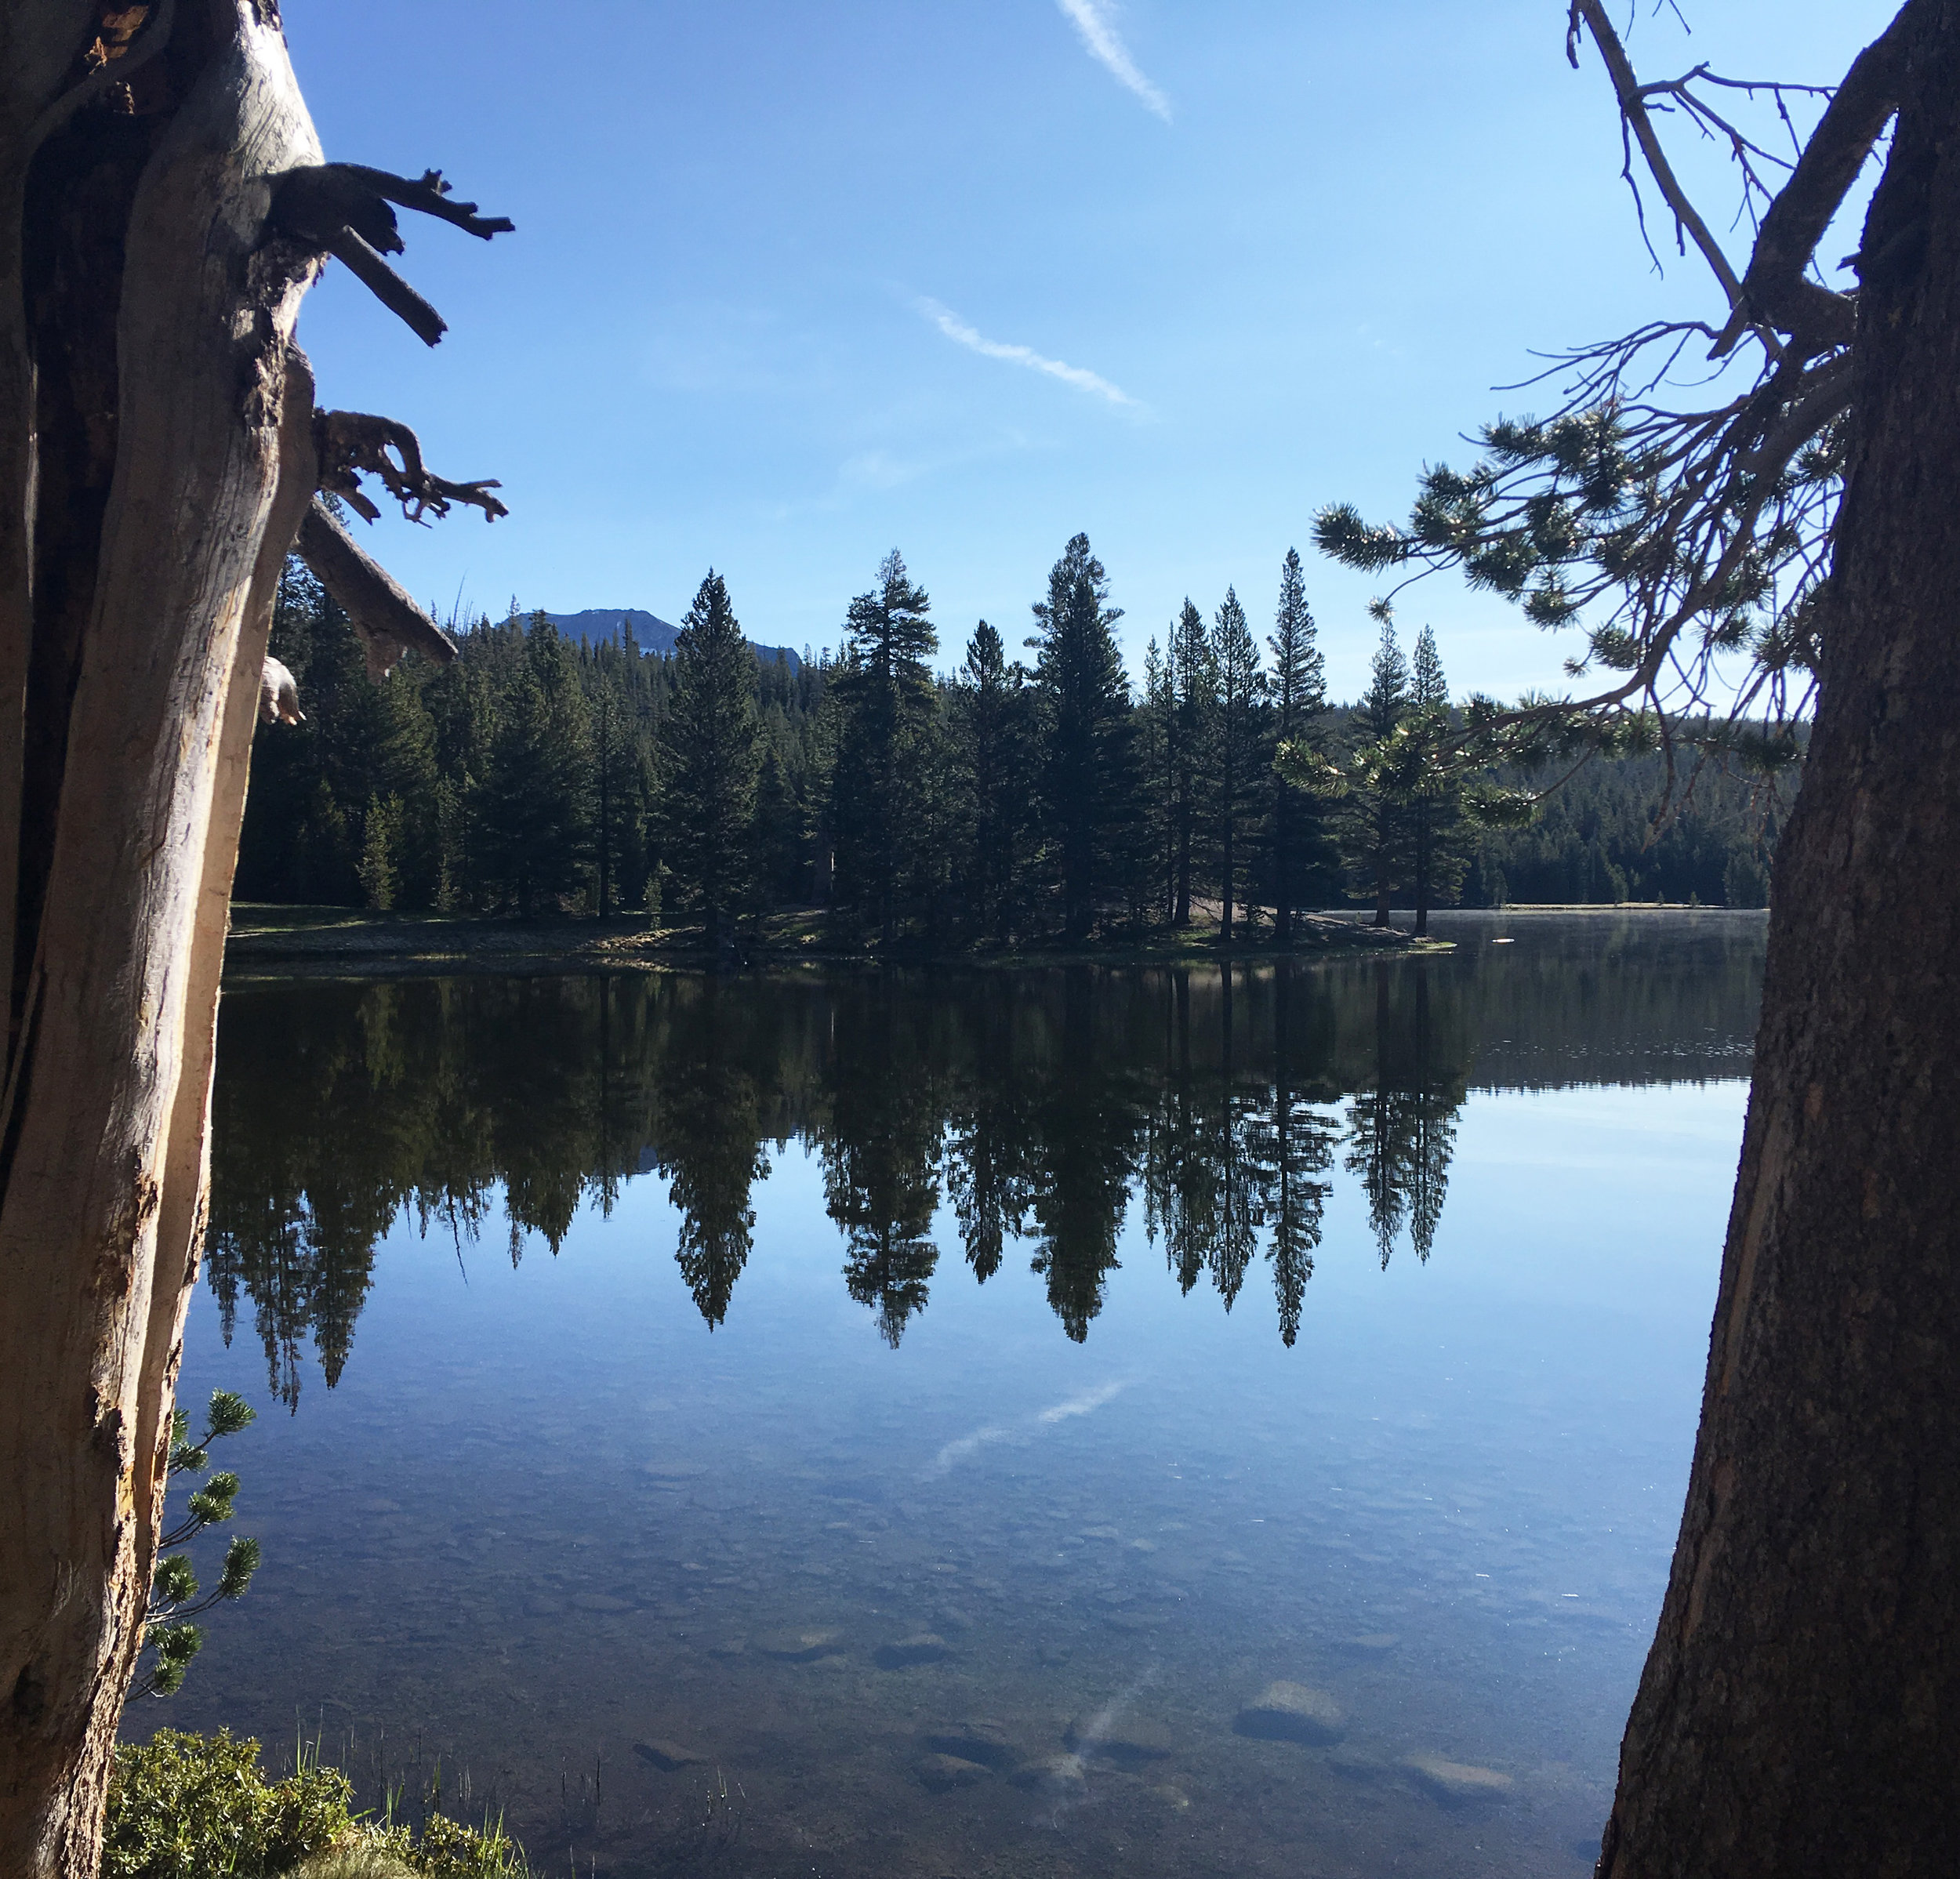 Dog Lake - July 2019 - As viewed after an early morning hike with no other visitors around